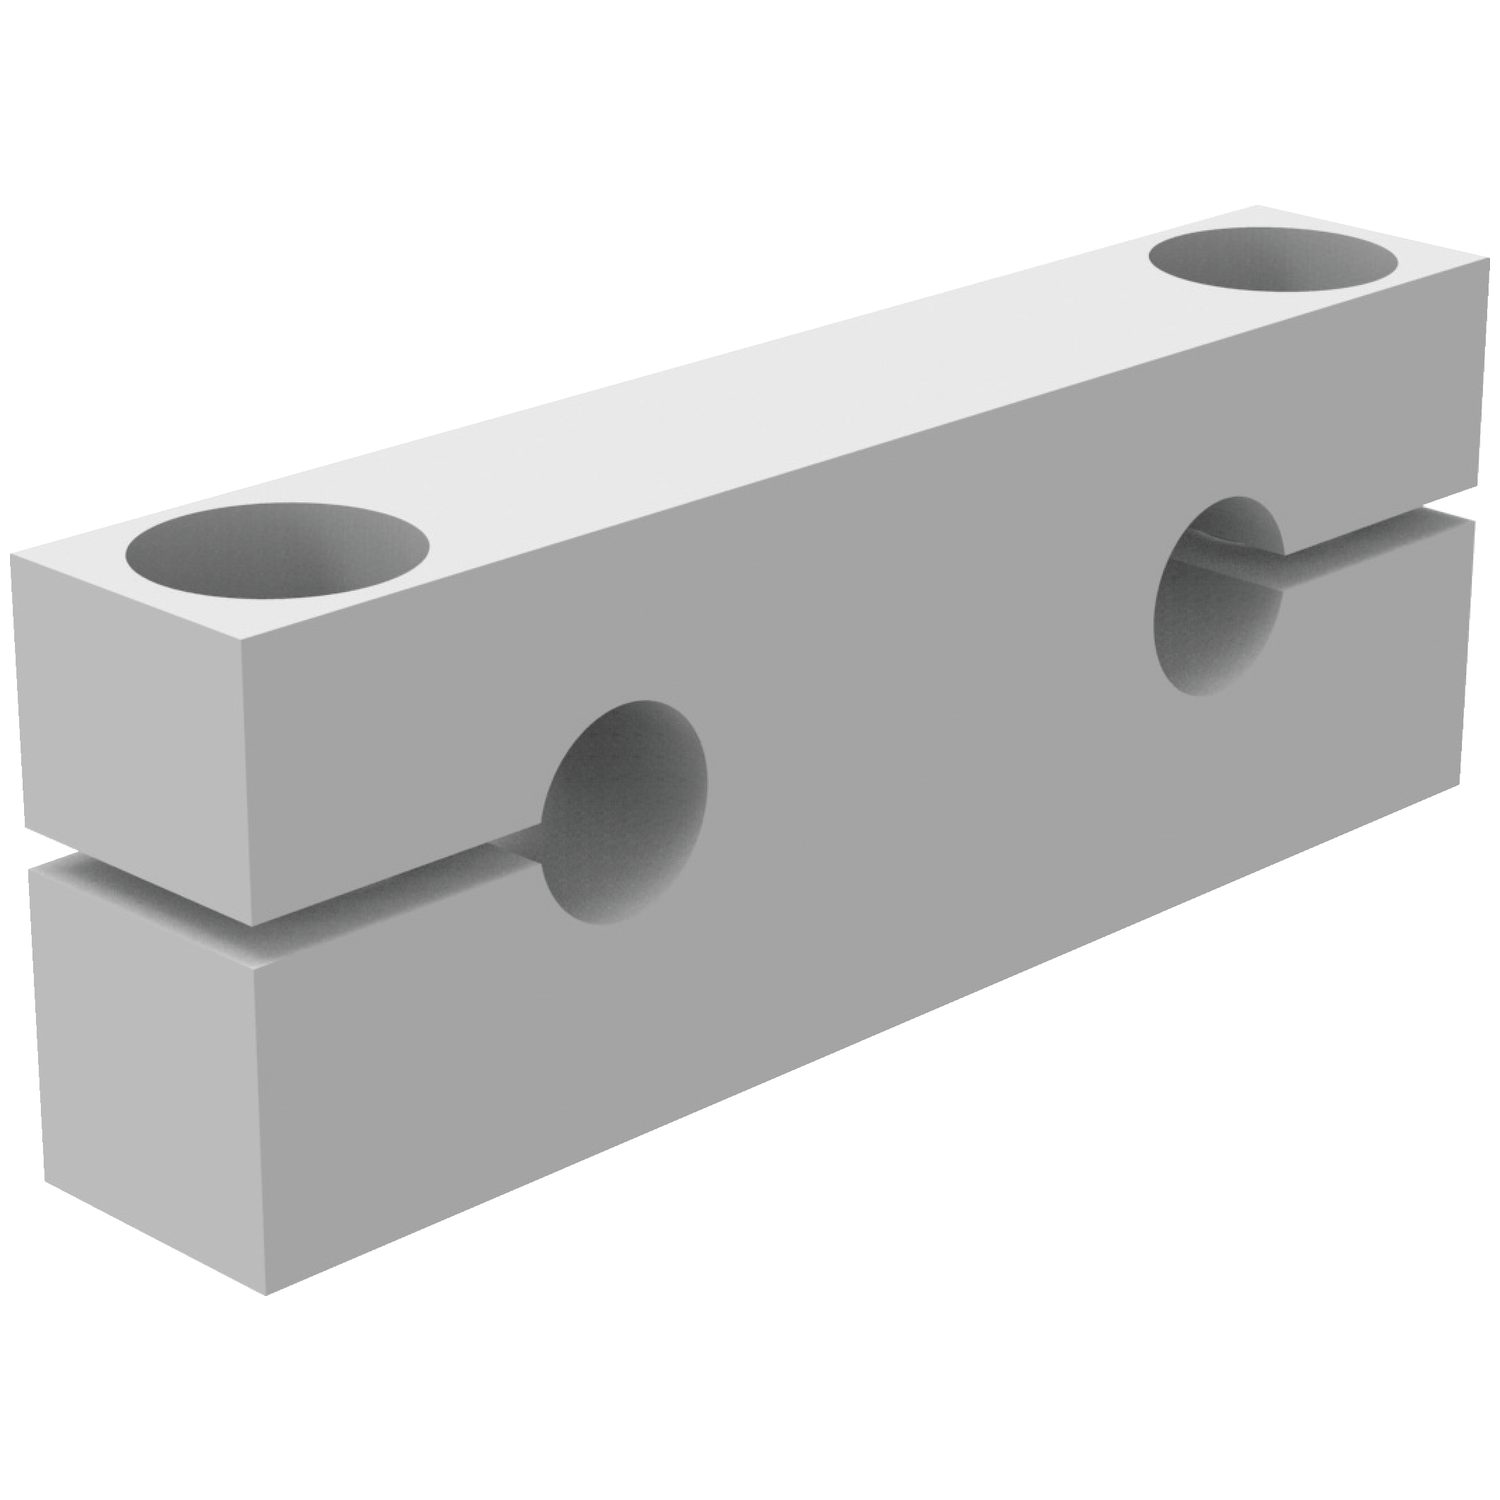 L1760 - End Blocks for Twin Shafts